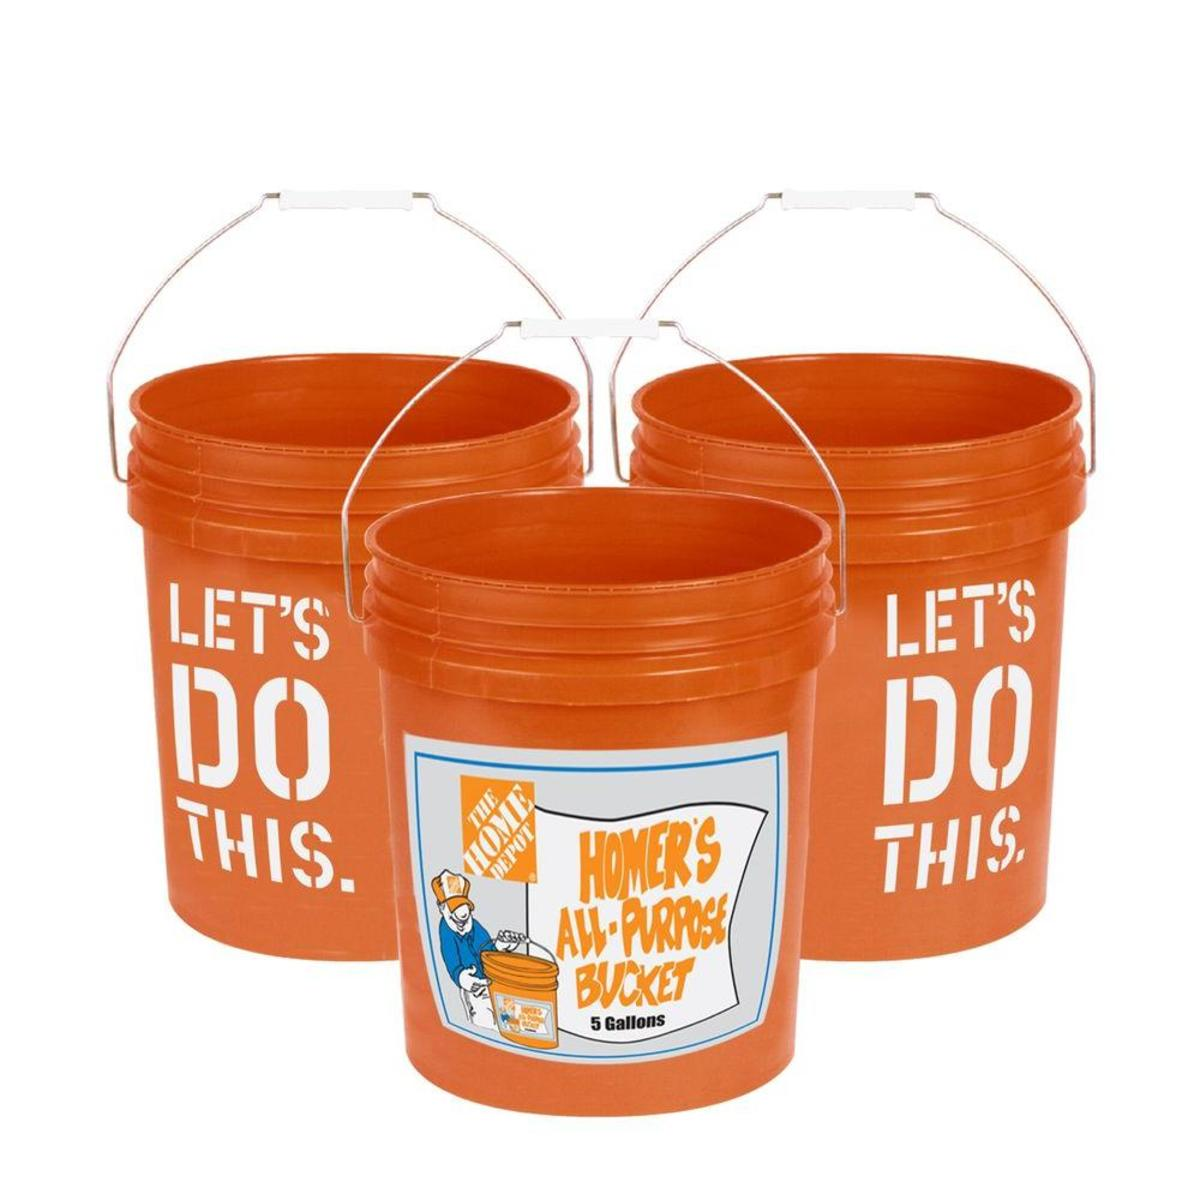 Try Gift Buckets Instead of Gift Bags for Holidays, Birthdays, & More